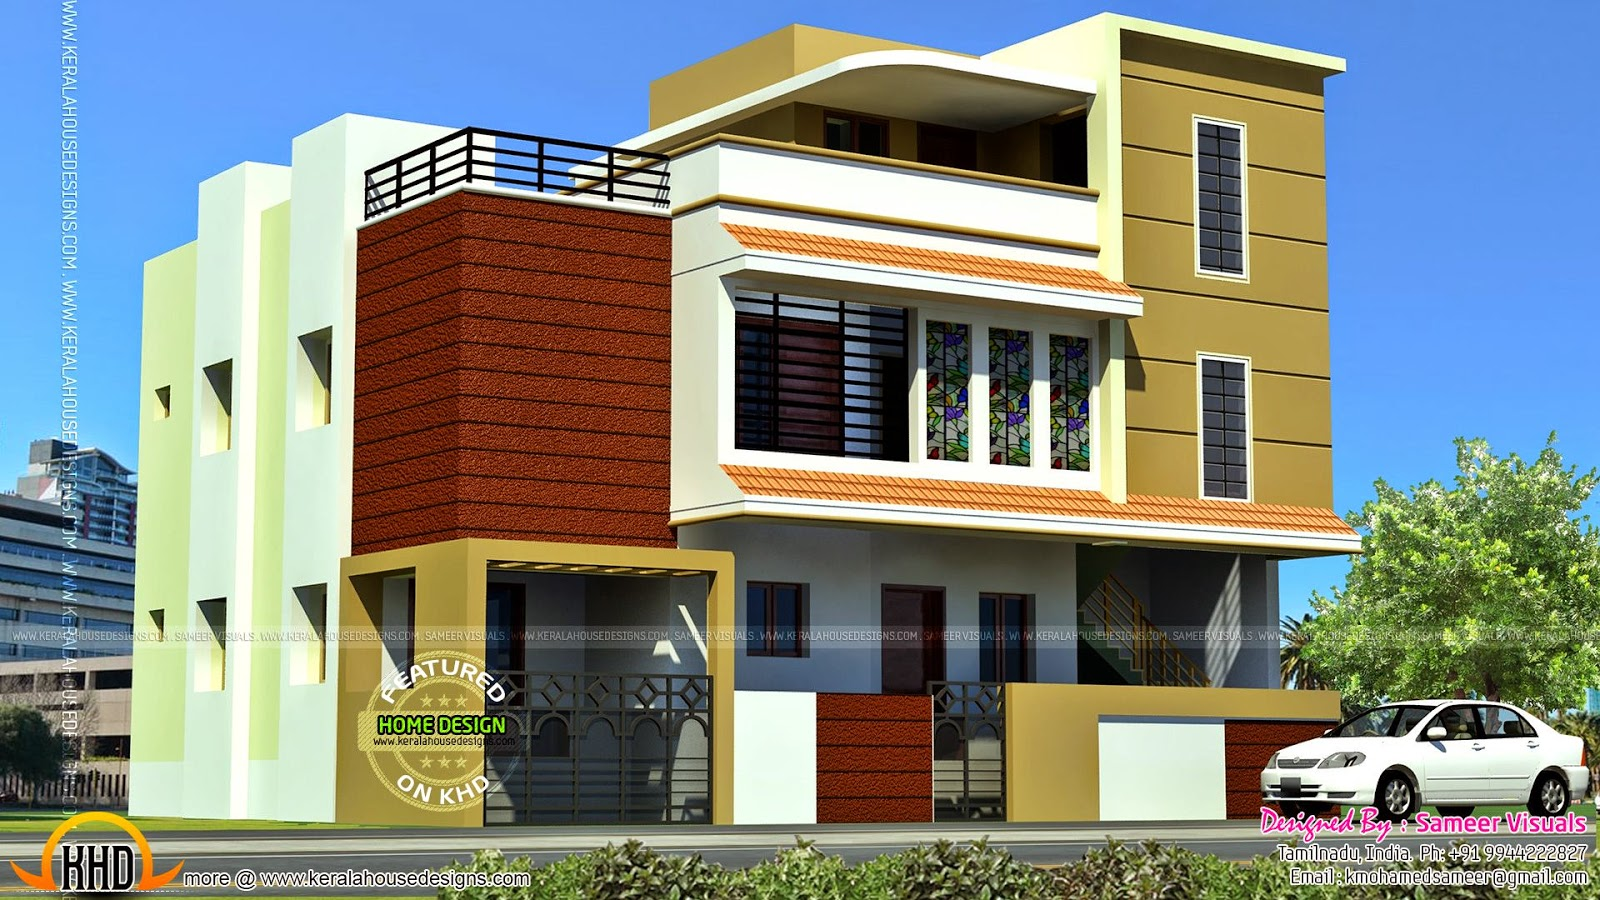 Latest model houses in tamilnadu house best design for The model house